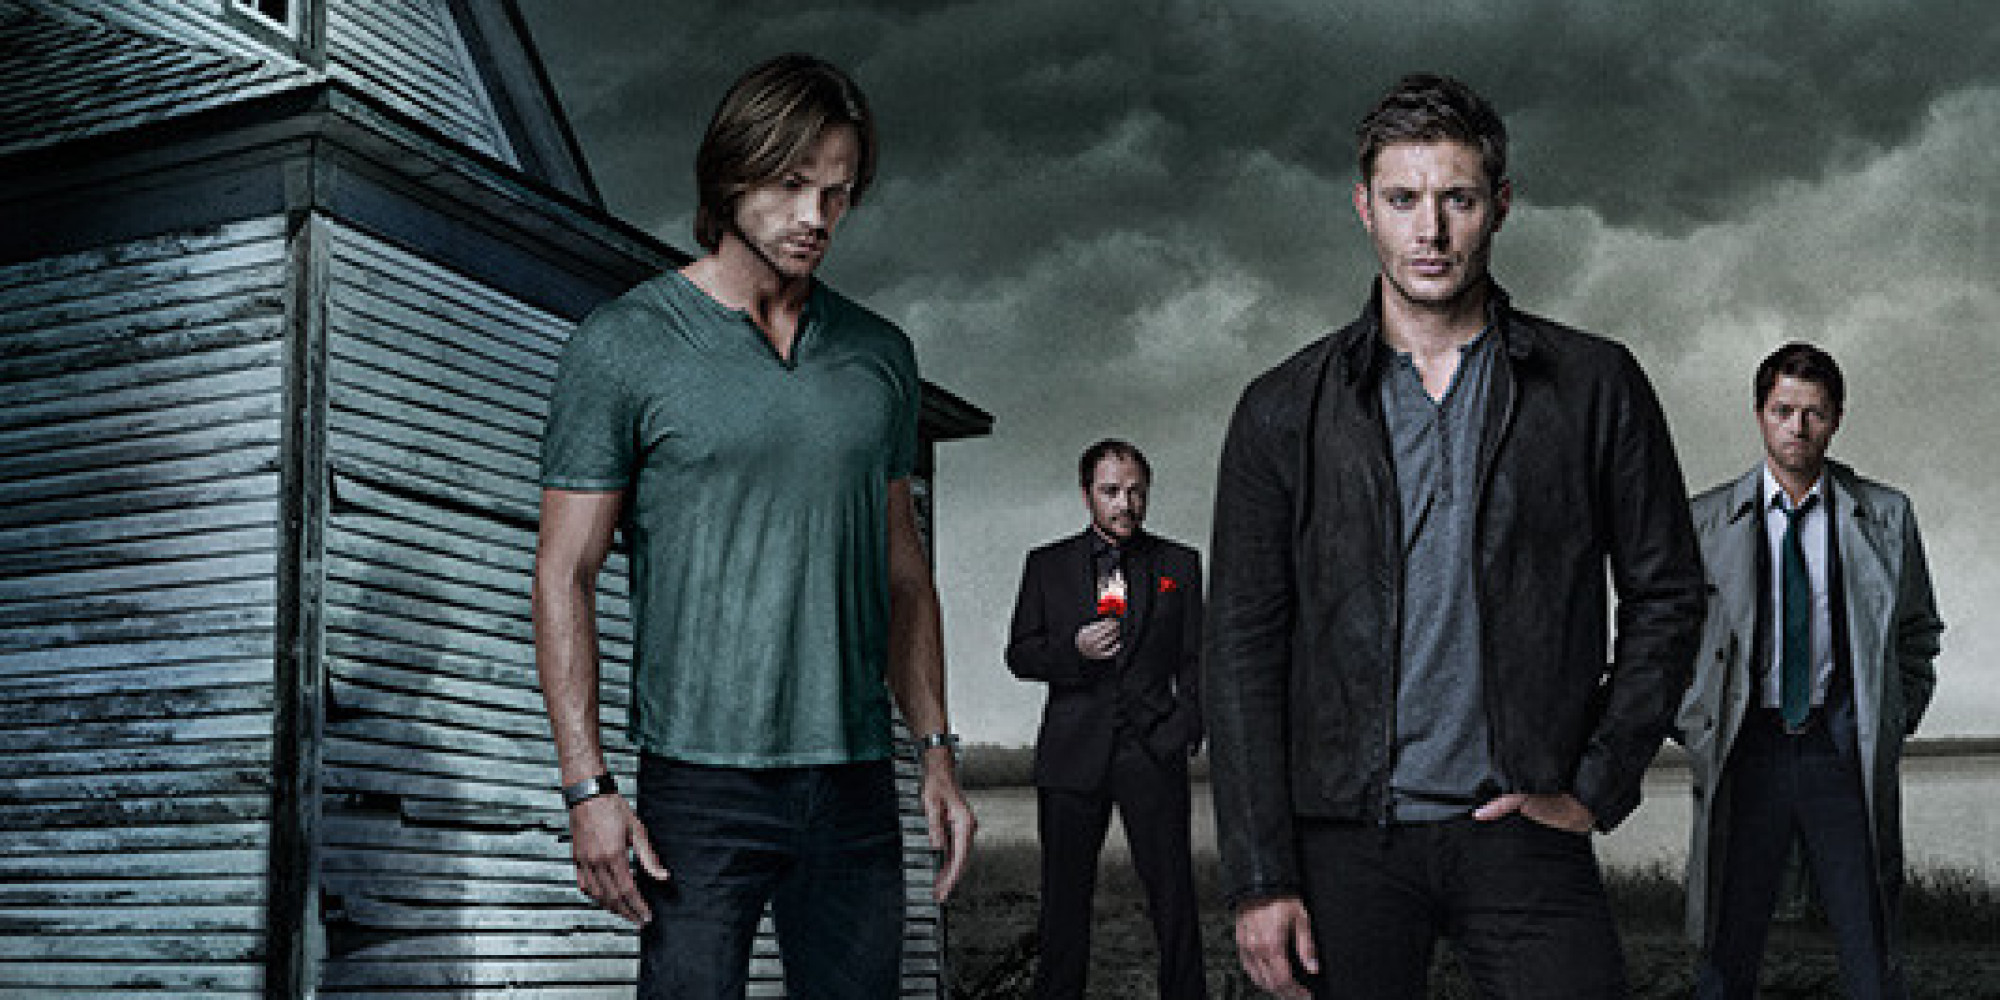 Supernatural season 9 poster sam dean castiel and crowley supernatural season 9 poster sam dean castiel and crowley prepare for the fall photo huffpost voltagebd Image collections